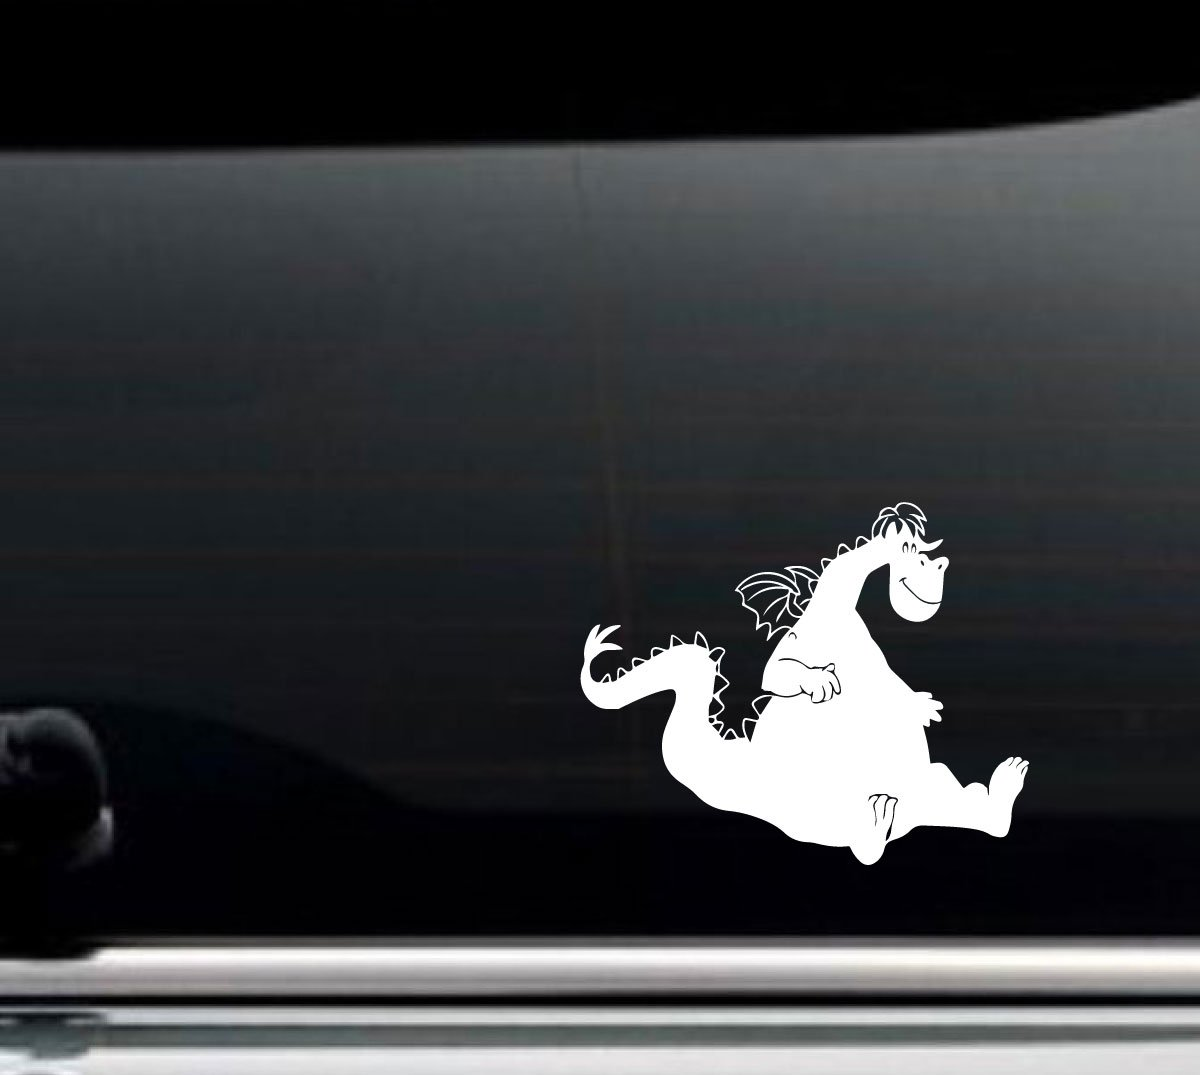 Car Decal Petes Dragon 9in x 7in Vinyl Sticker Decor for Window or Other Flat Surfaces in Your Vehicle